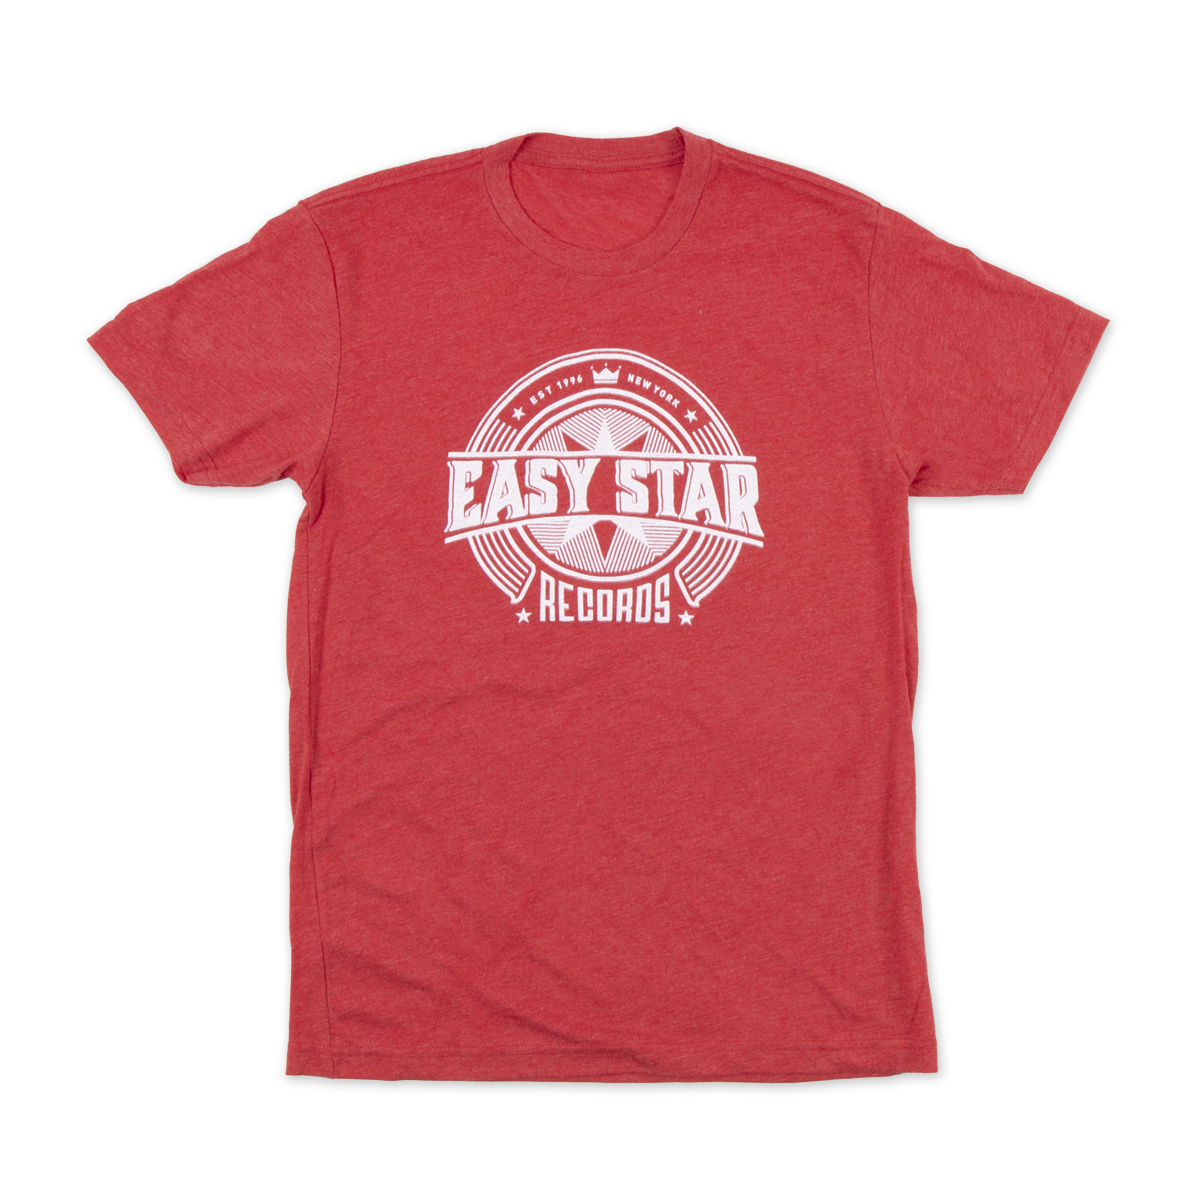 Easy Star Records Circle Logo Red Tee Shirt